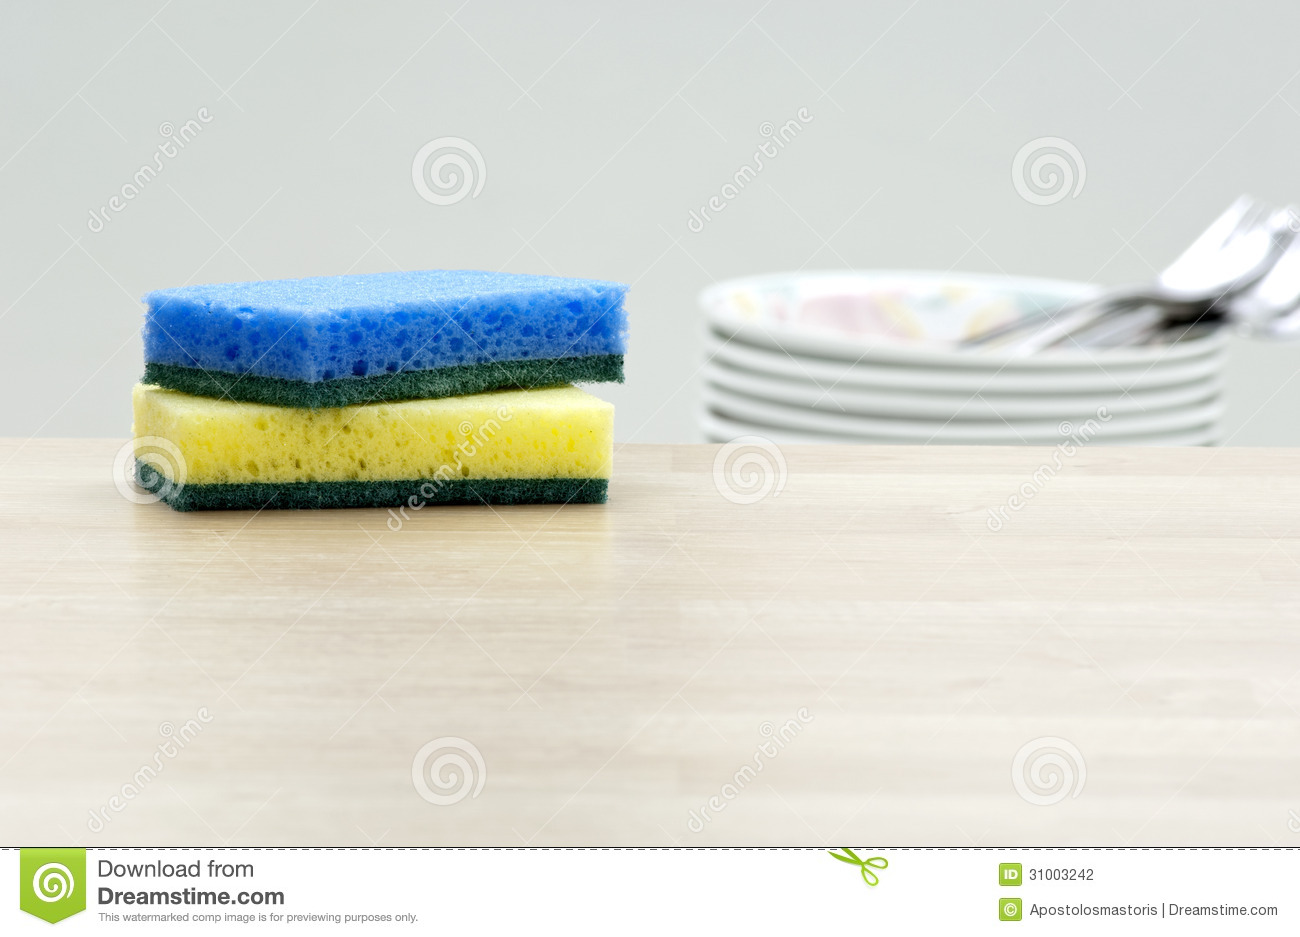 Cleaning Sponges And Dishes In A Kitchen Stock Photo - Image of ...